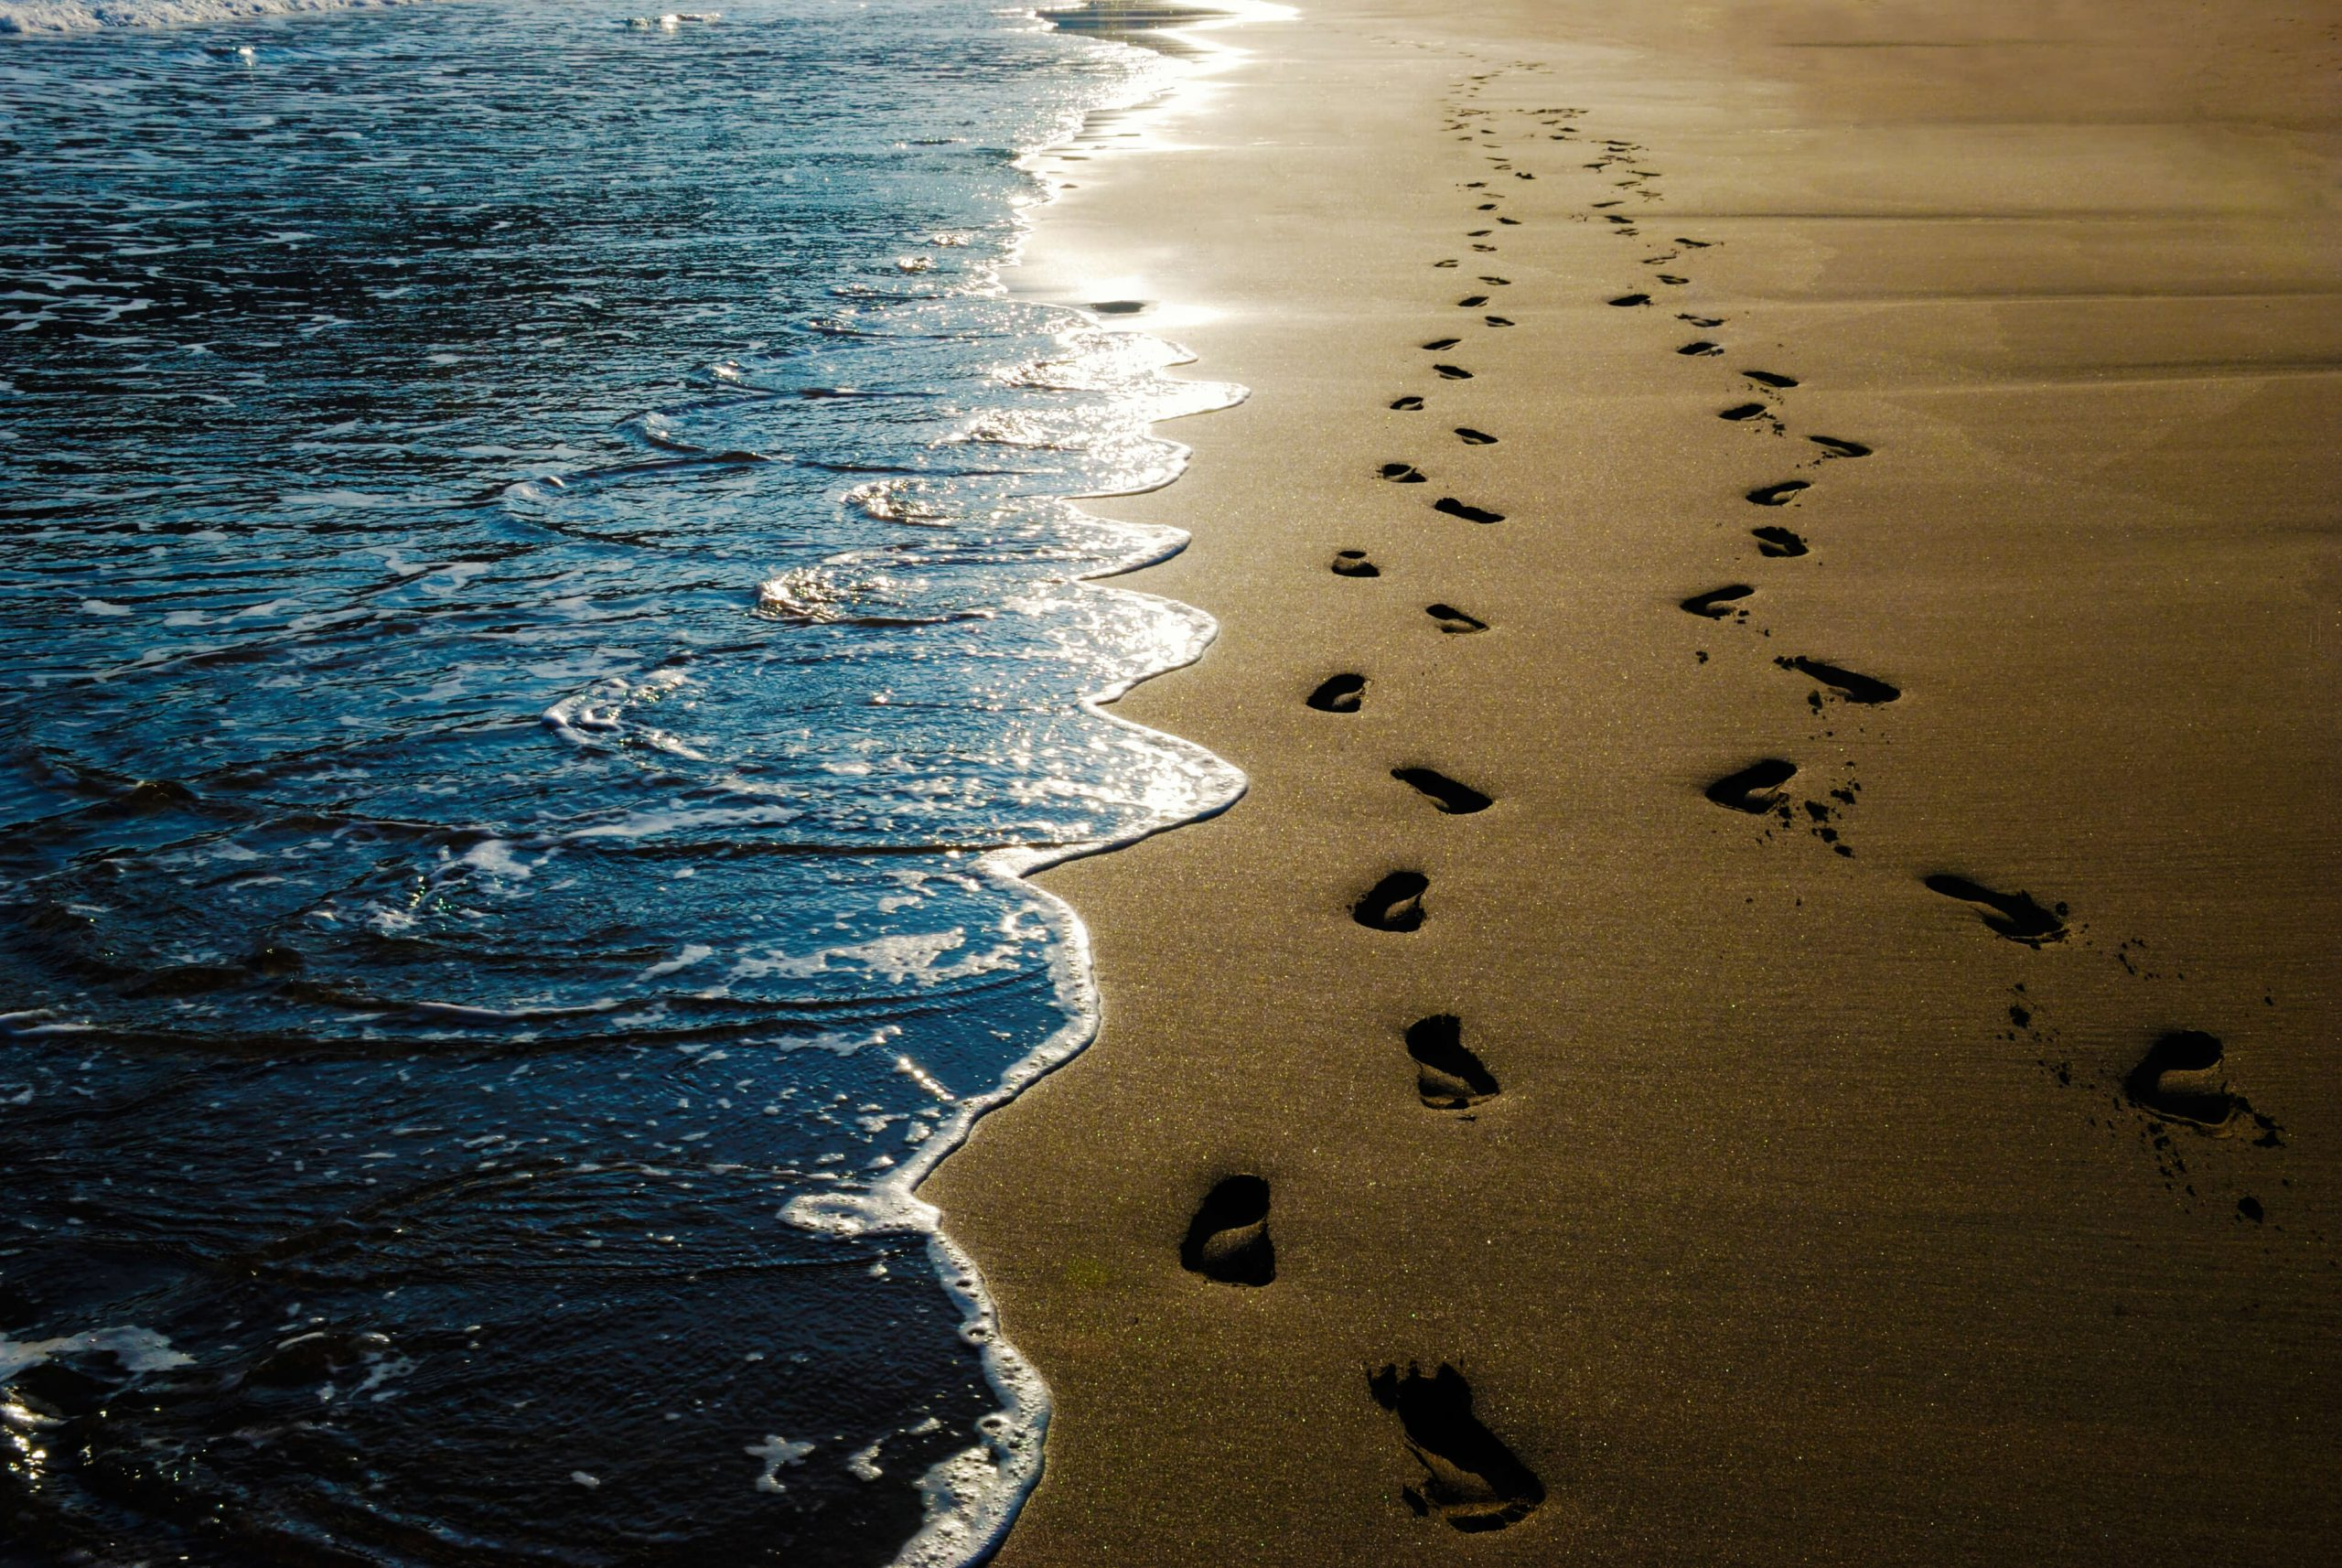 Footprints in the sand - not alone